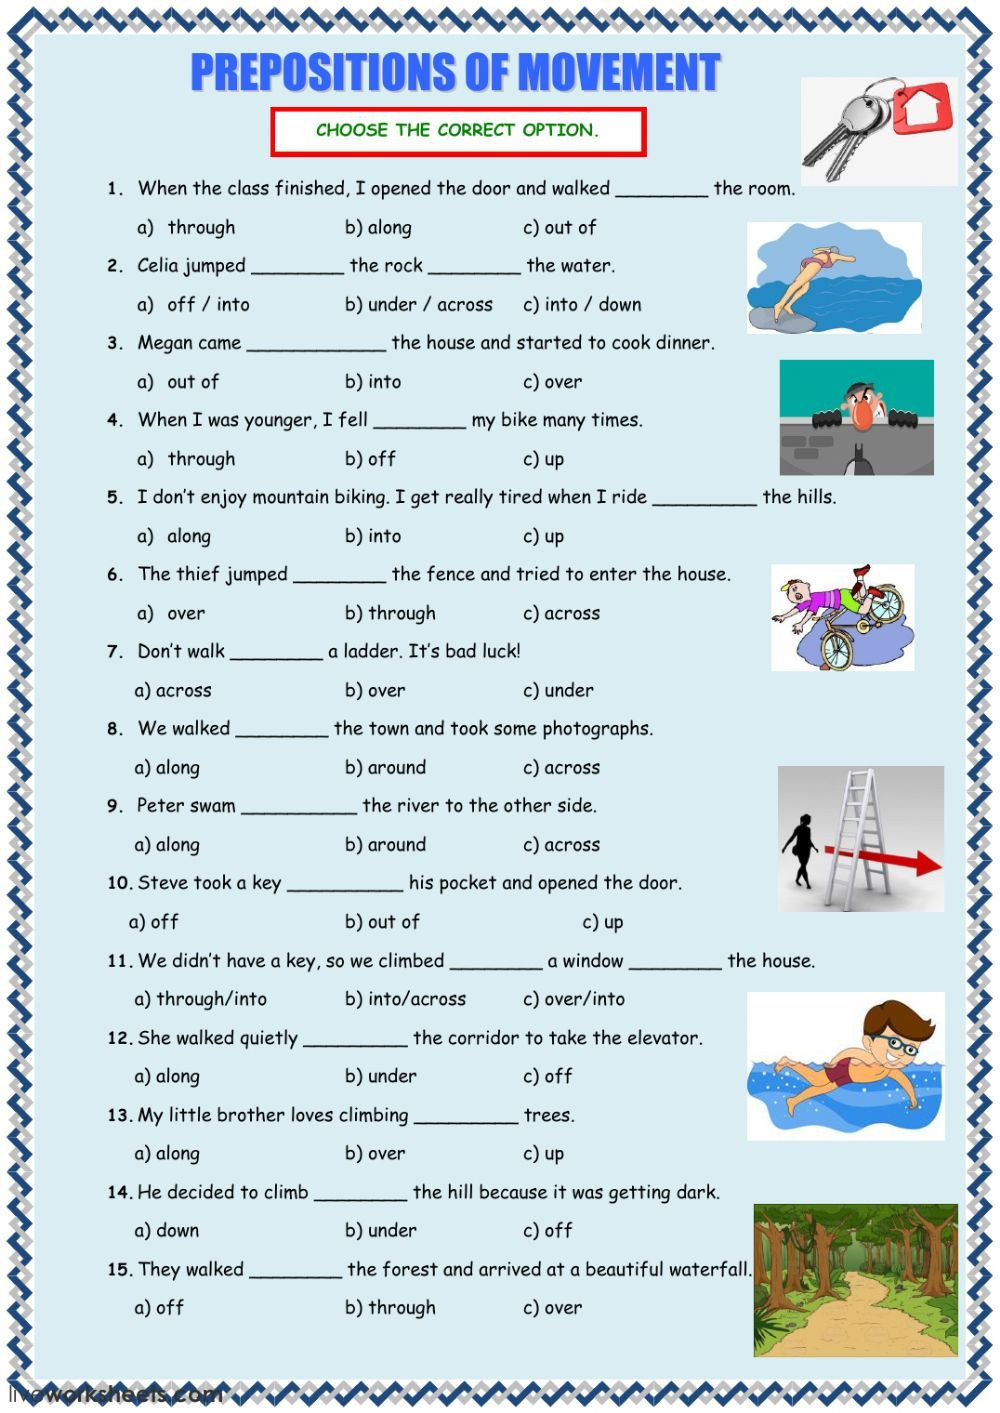 Preposition Worksheets for Middle School Prepositions Of Movement Interactive and Able